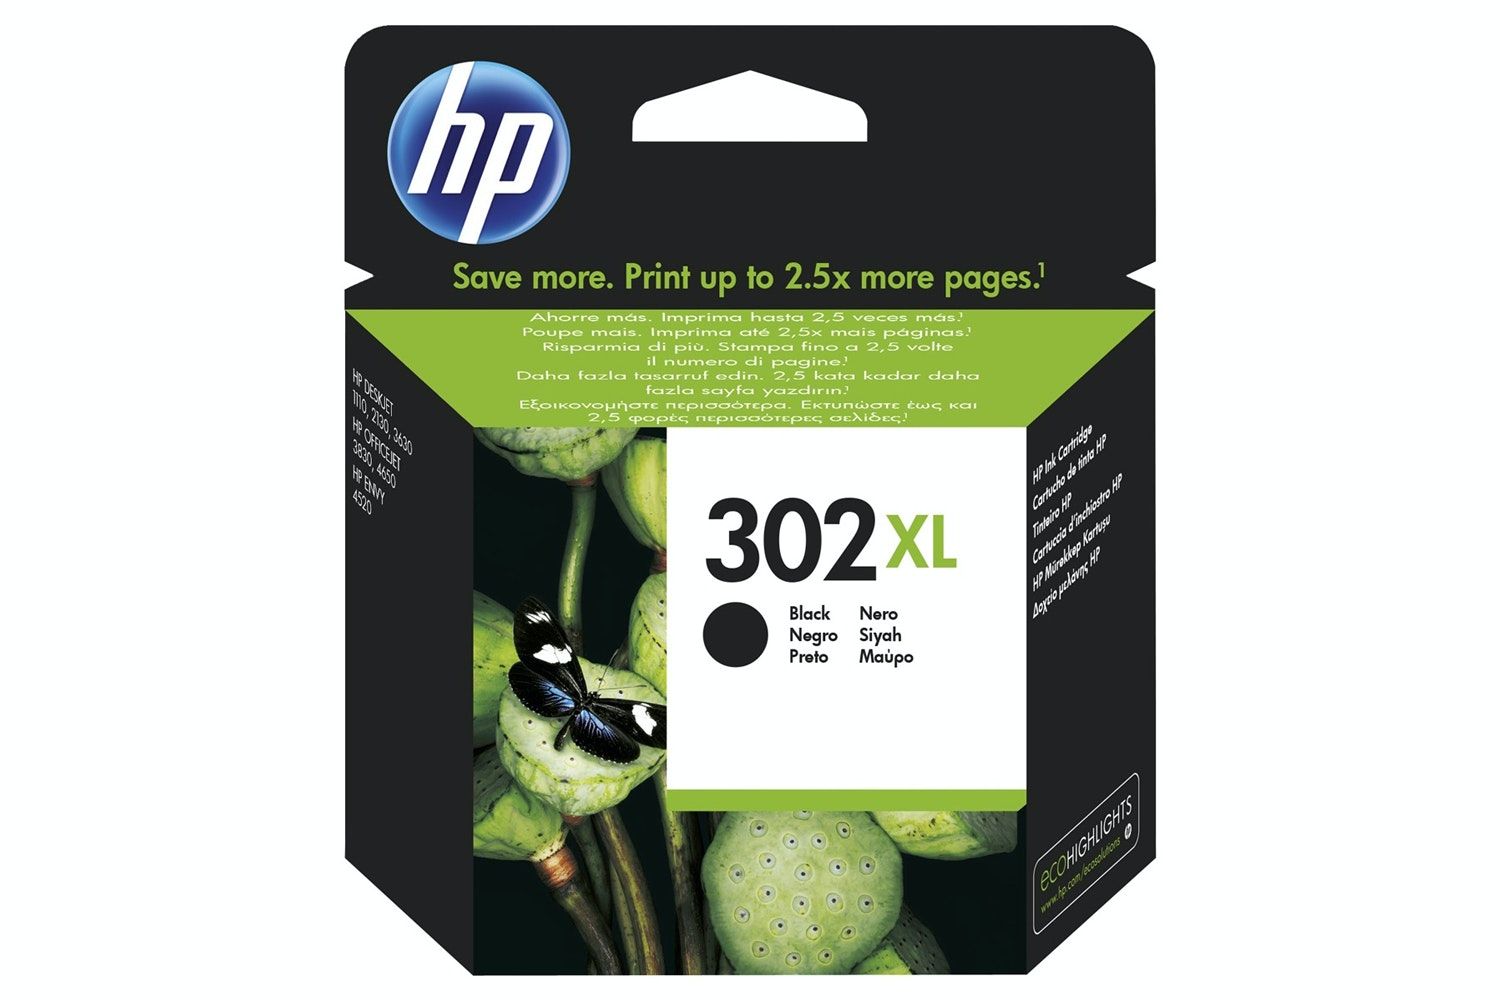 HP 302XL Black Ink